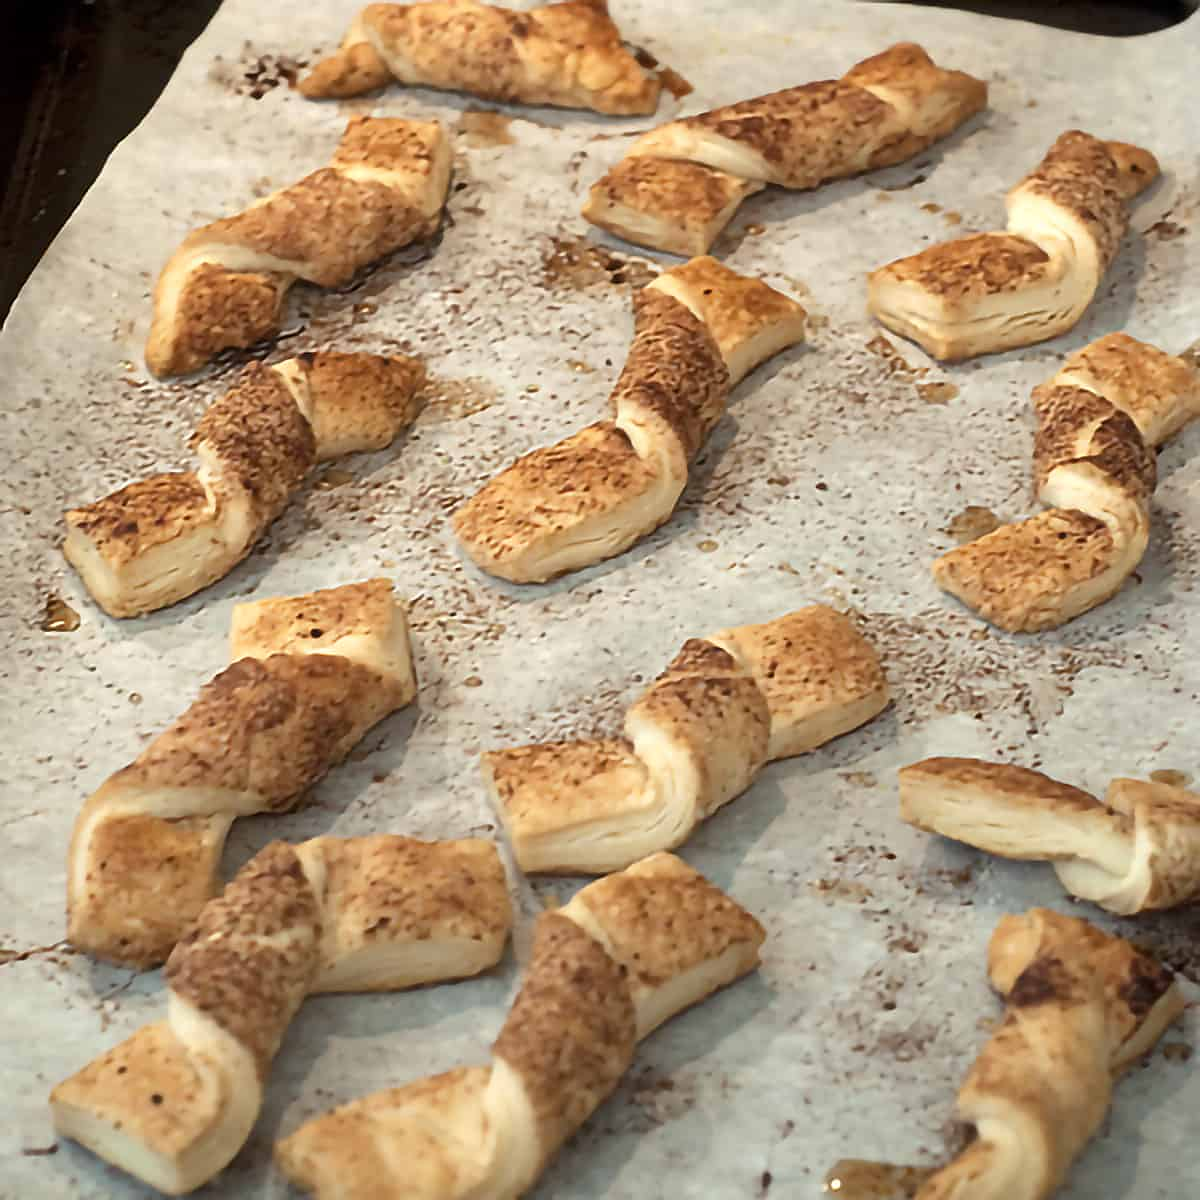 Pie crust cinnamon twists after baking.